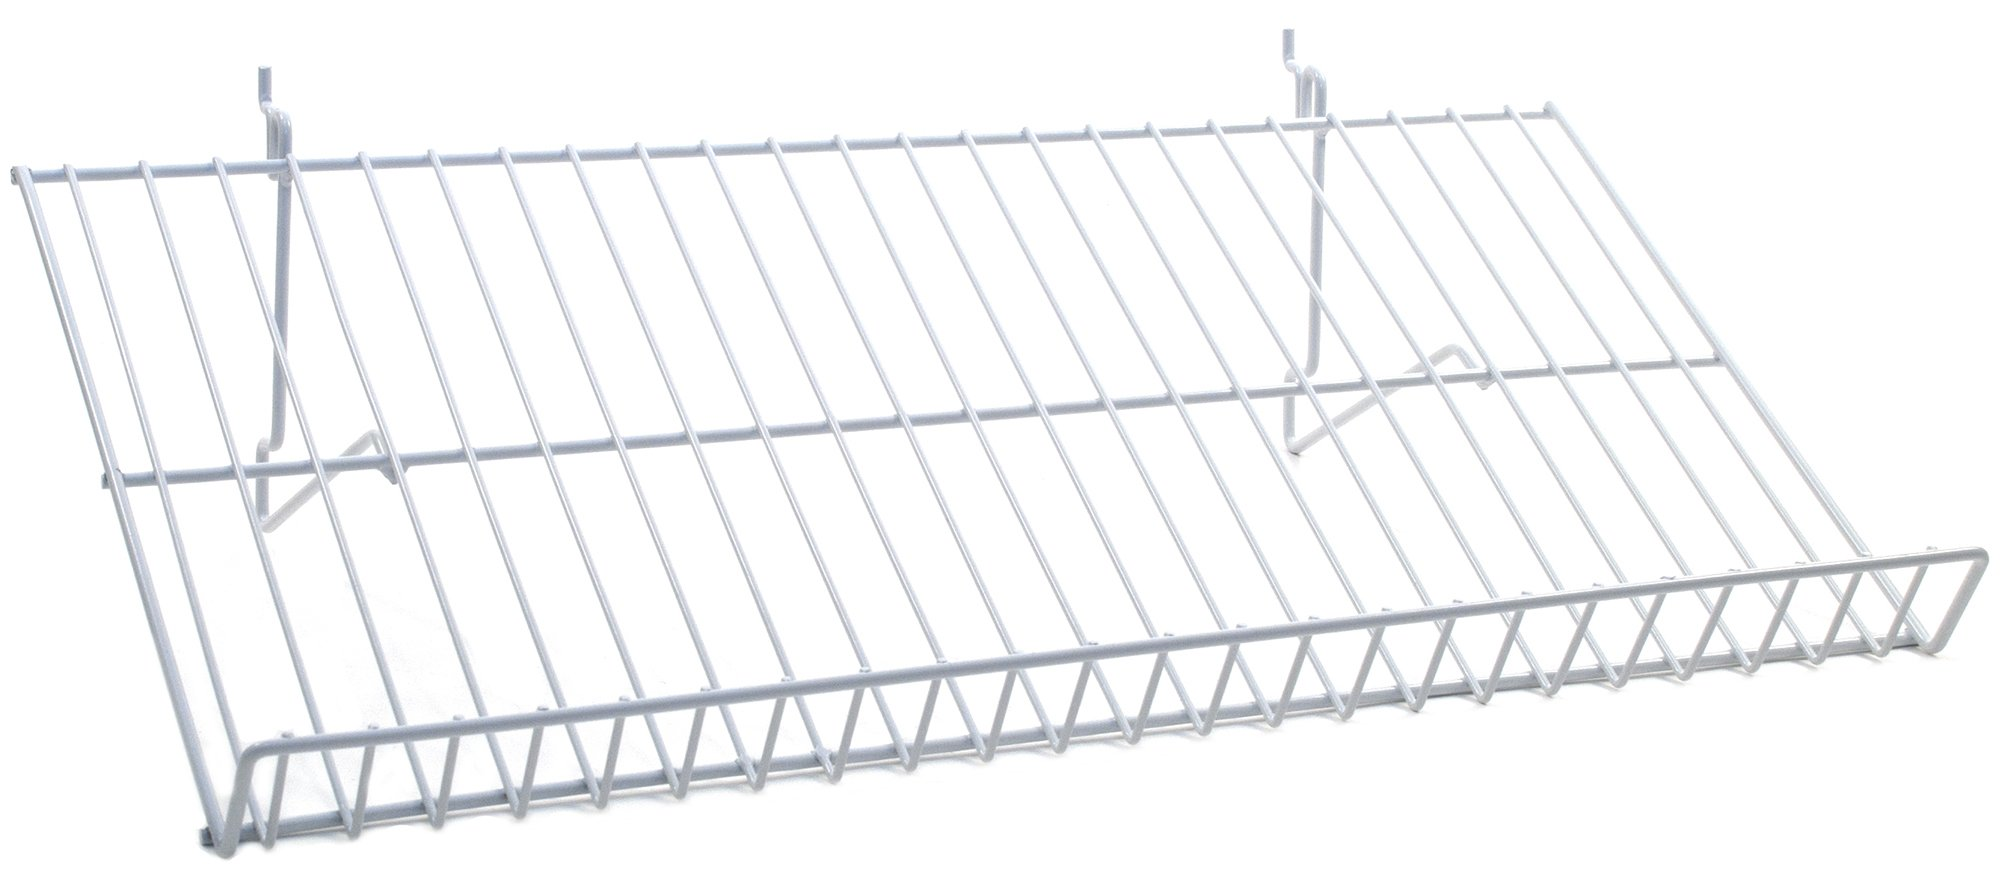 KC Store Fixtures A03061 Sloping Shelf Fits Slatwall, Grid, Pegboard, 23-1/2'' W x 12'' D, White (Pack of 6)